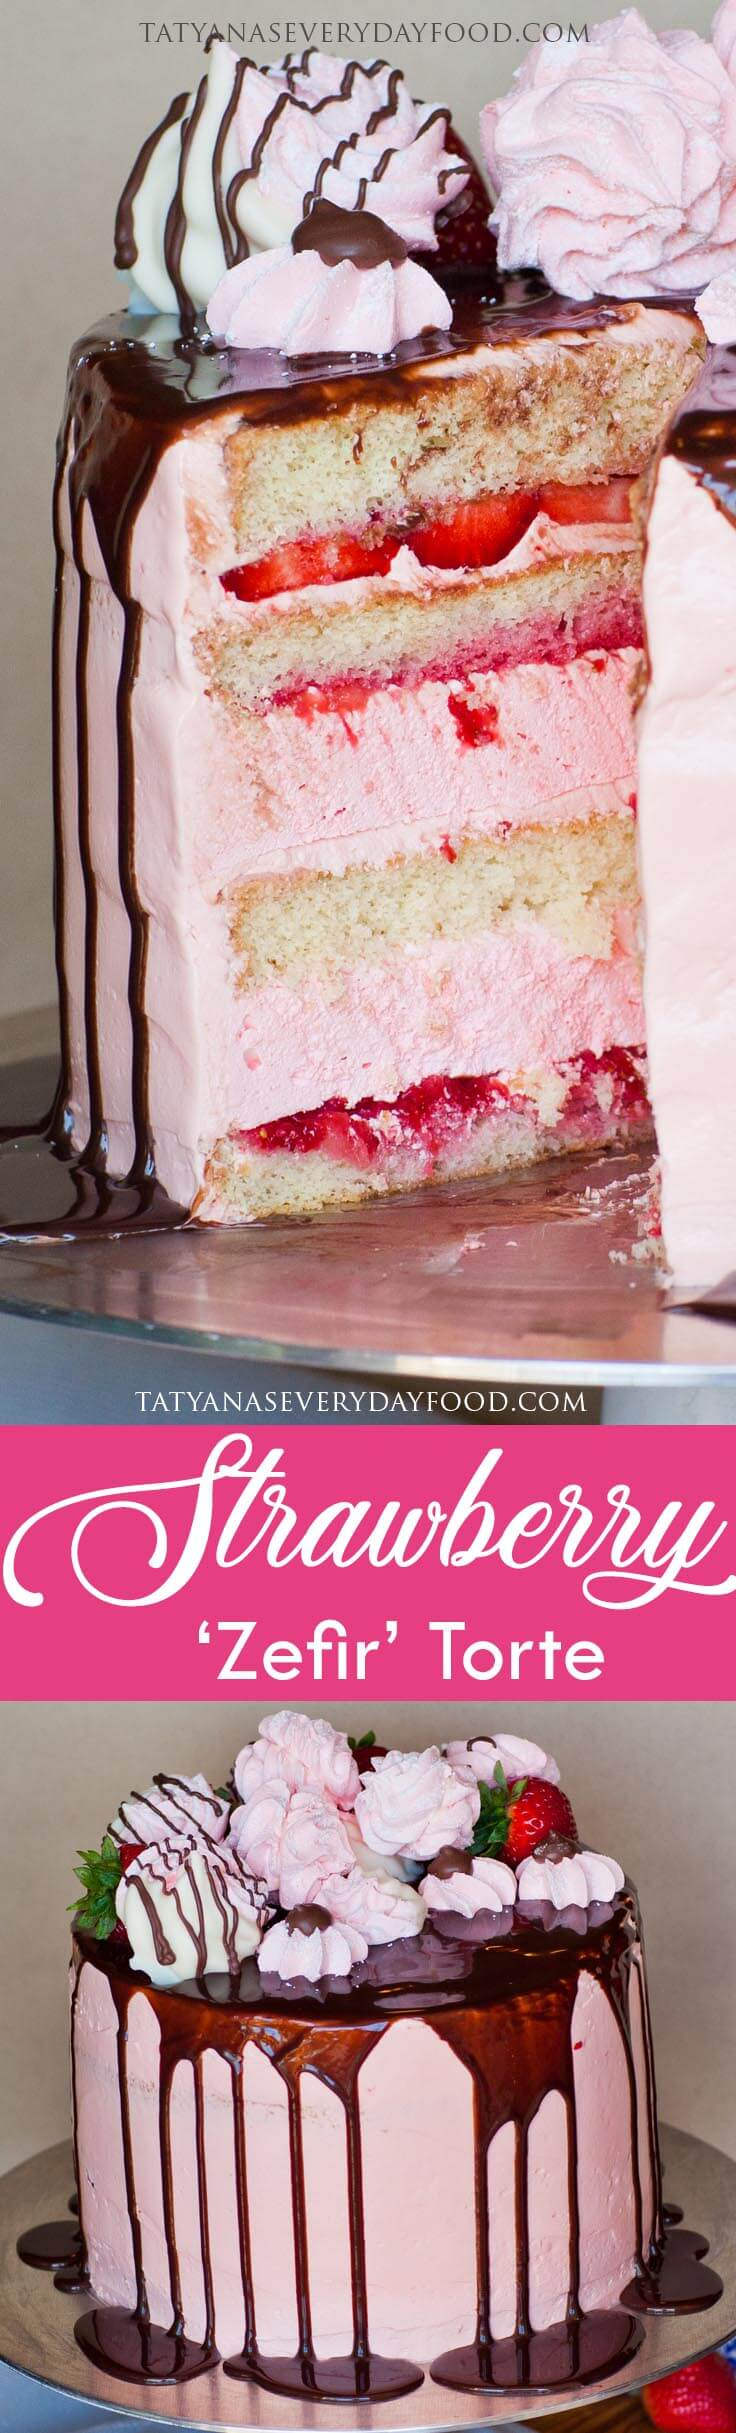 Strawberry Zefir Torte video recipe